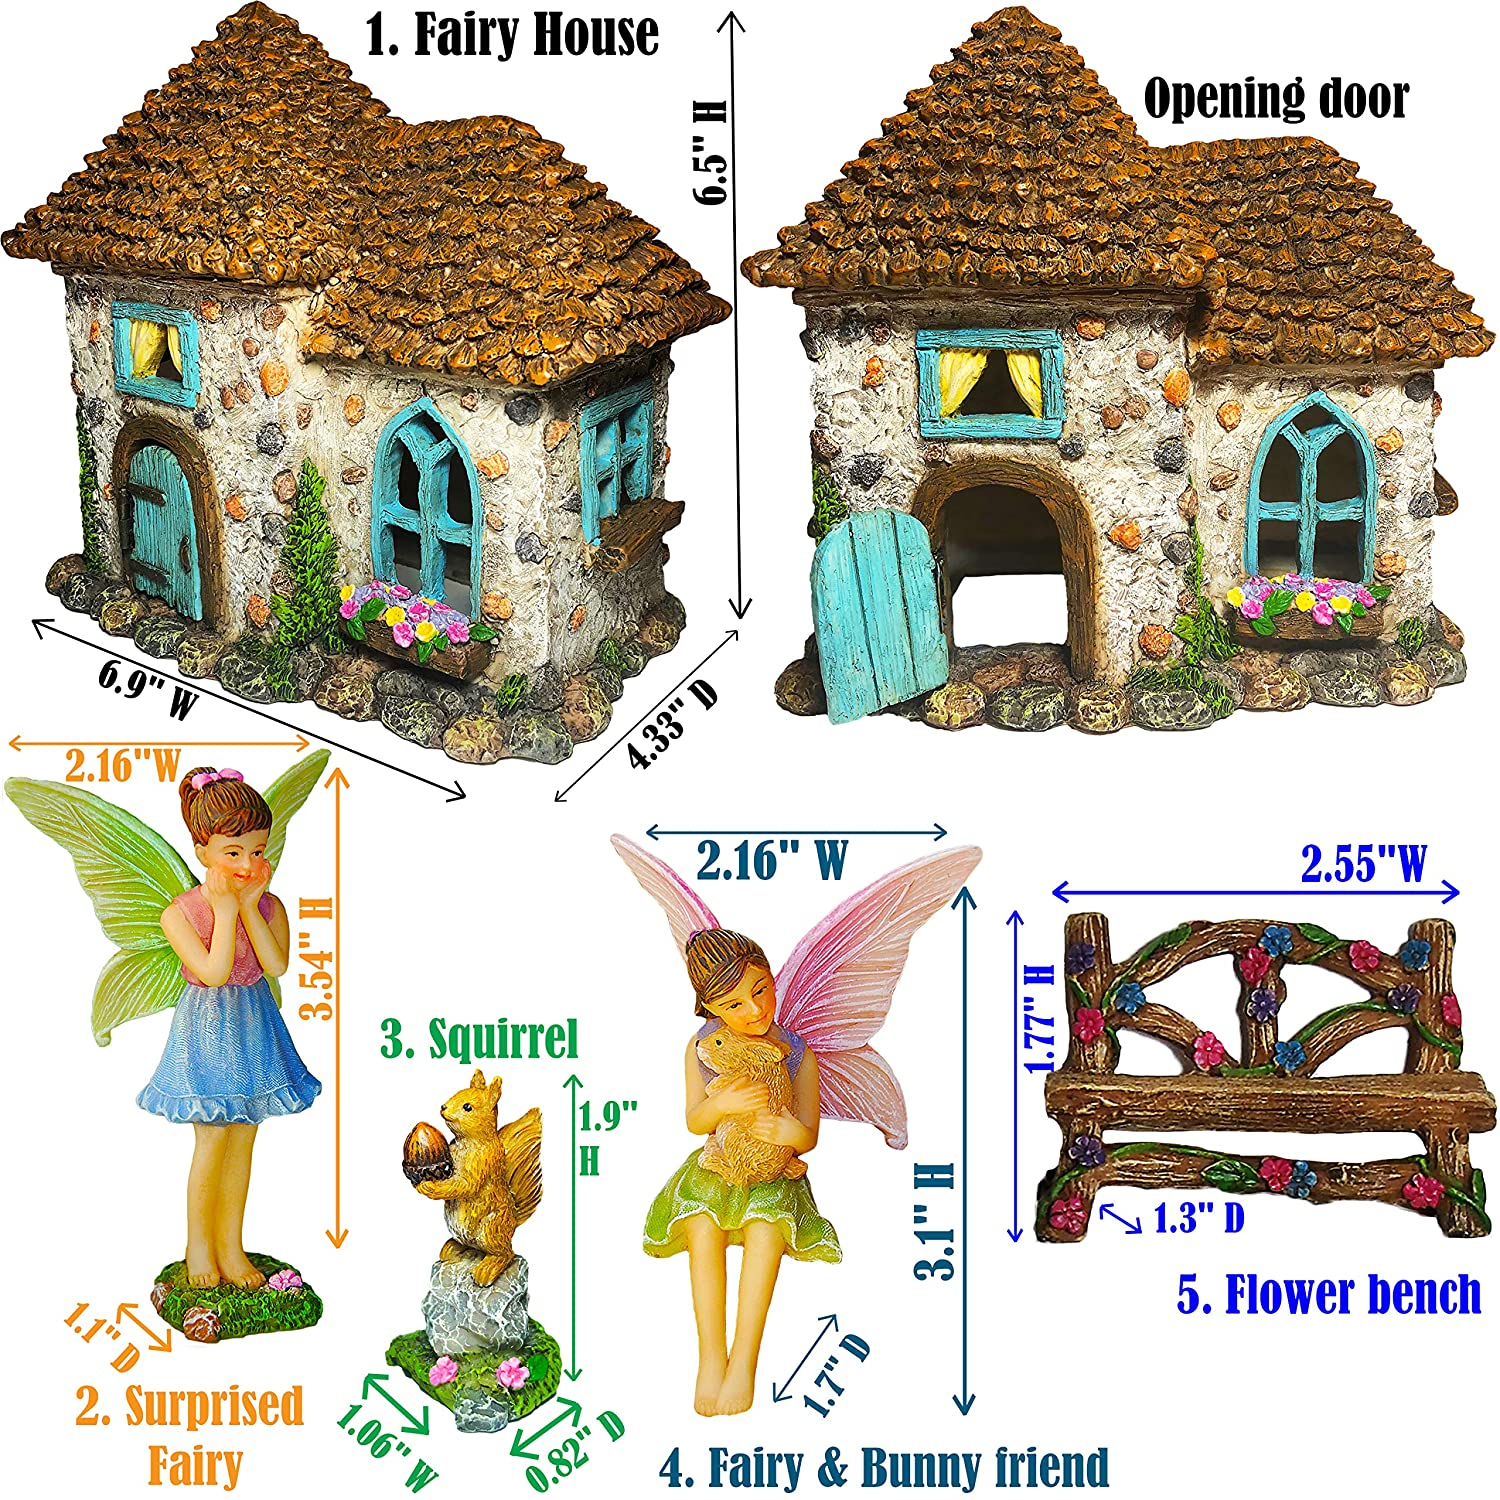 Set of 5 pcs Mood Lab Fairy Garden Fairy House Miniature Fairy Garden Figurines with Accessories Hand Painted Set for Outdoor or House Decor